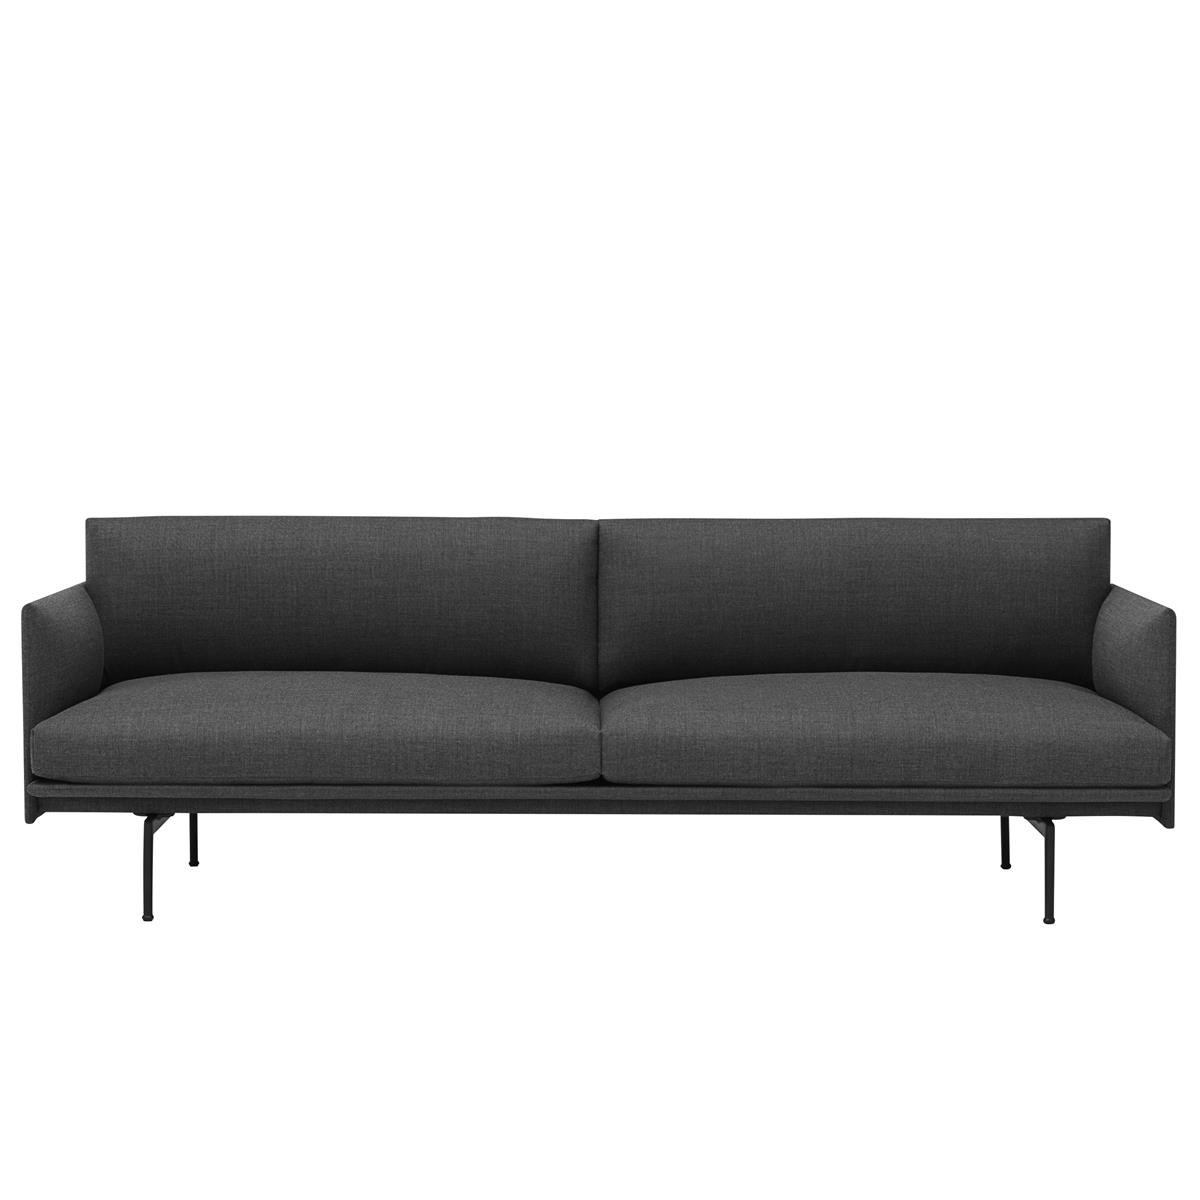 Outline Sofa 3 Seater - Remix & Black